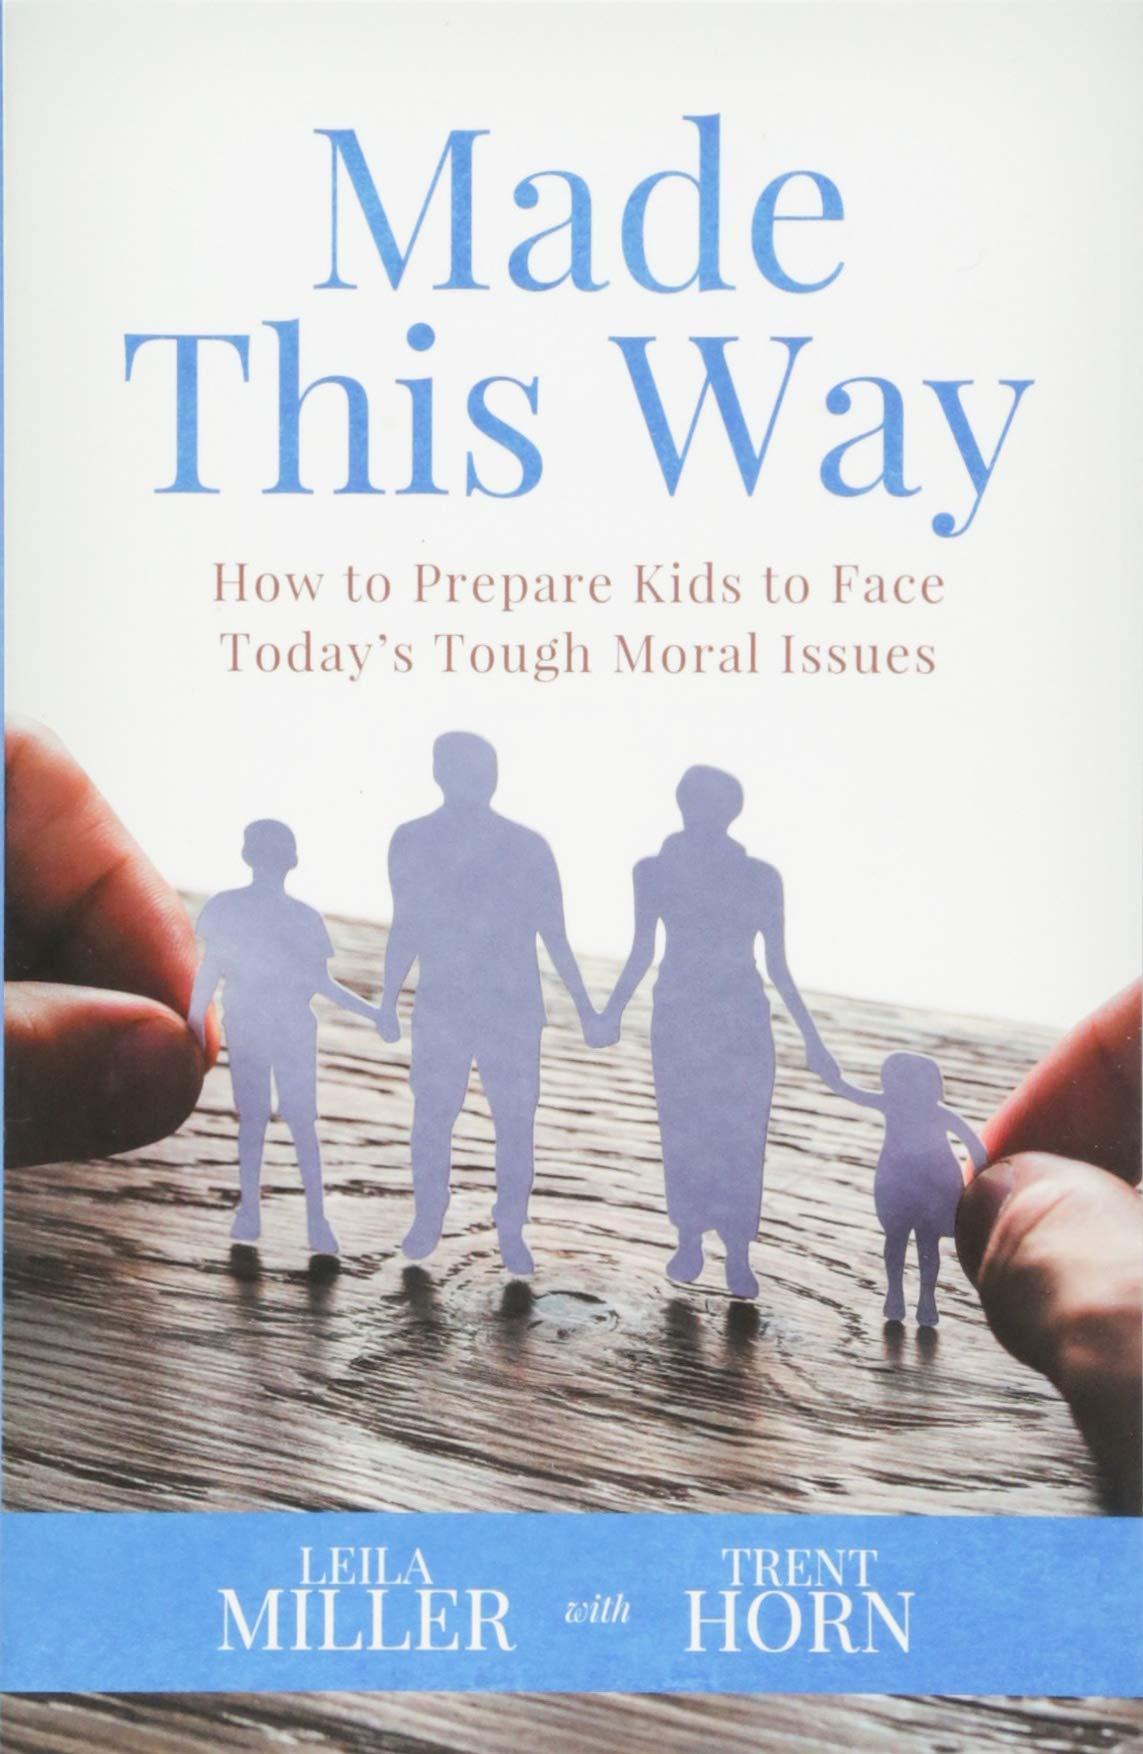 Made This Way by Leila Miller and Trent Horn-book cover